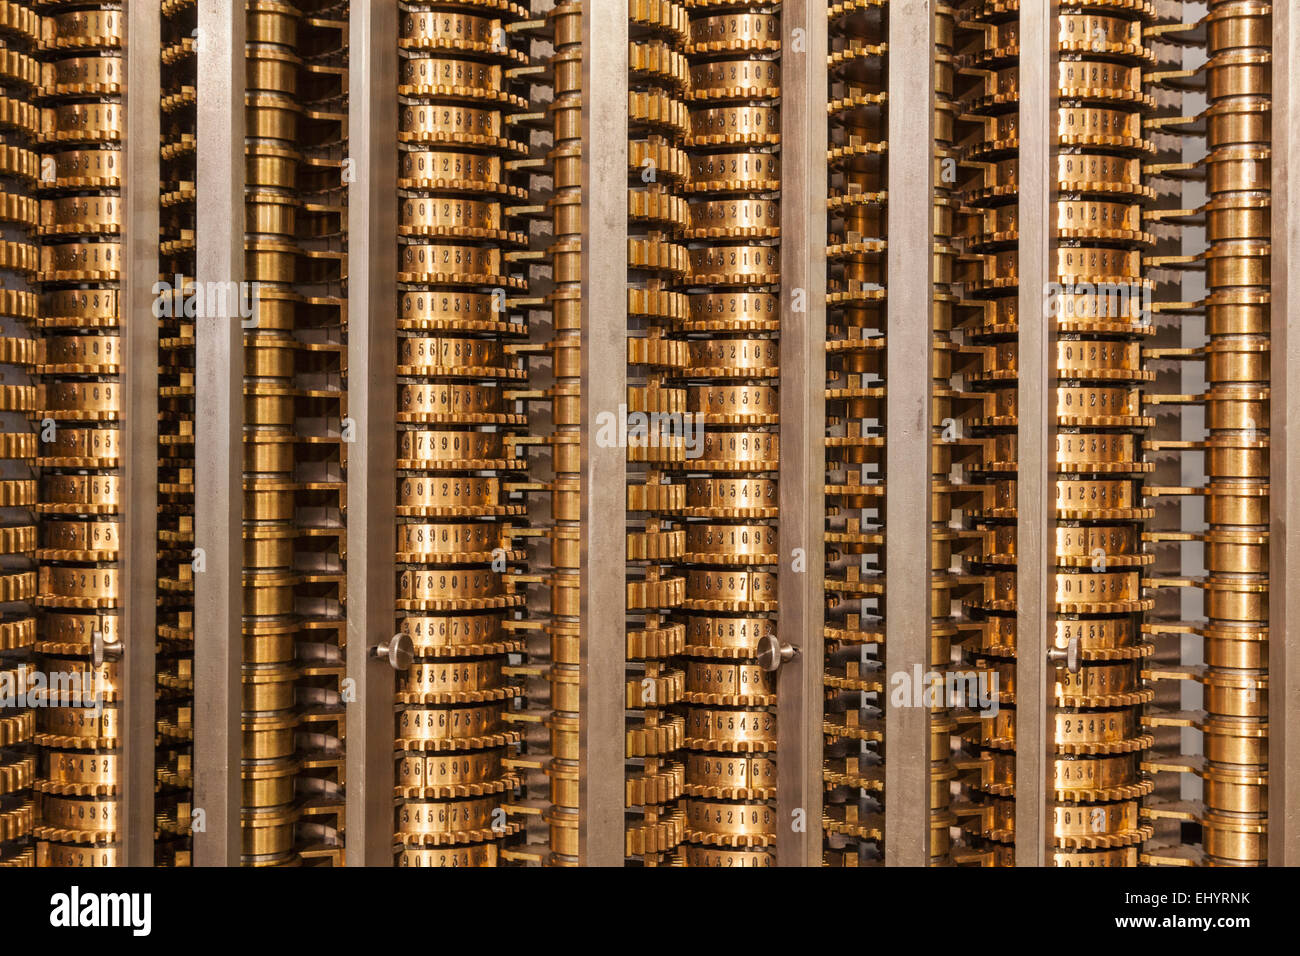 England, London, Kensington, Science Museum, Detail of Charles Babbage's Difference Engine No.2 - Stock Image